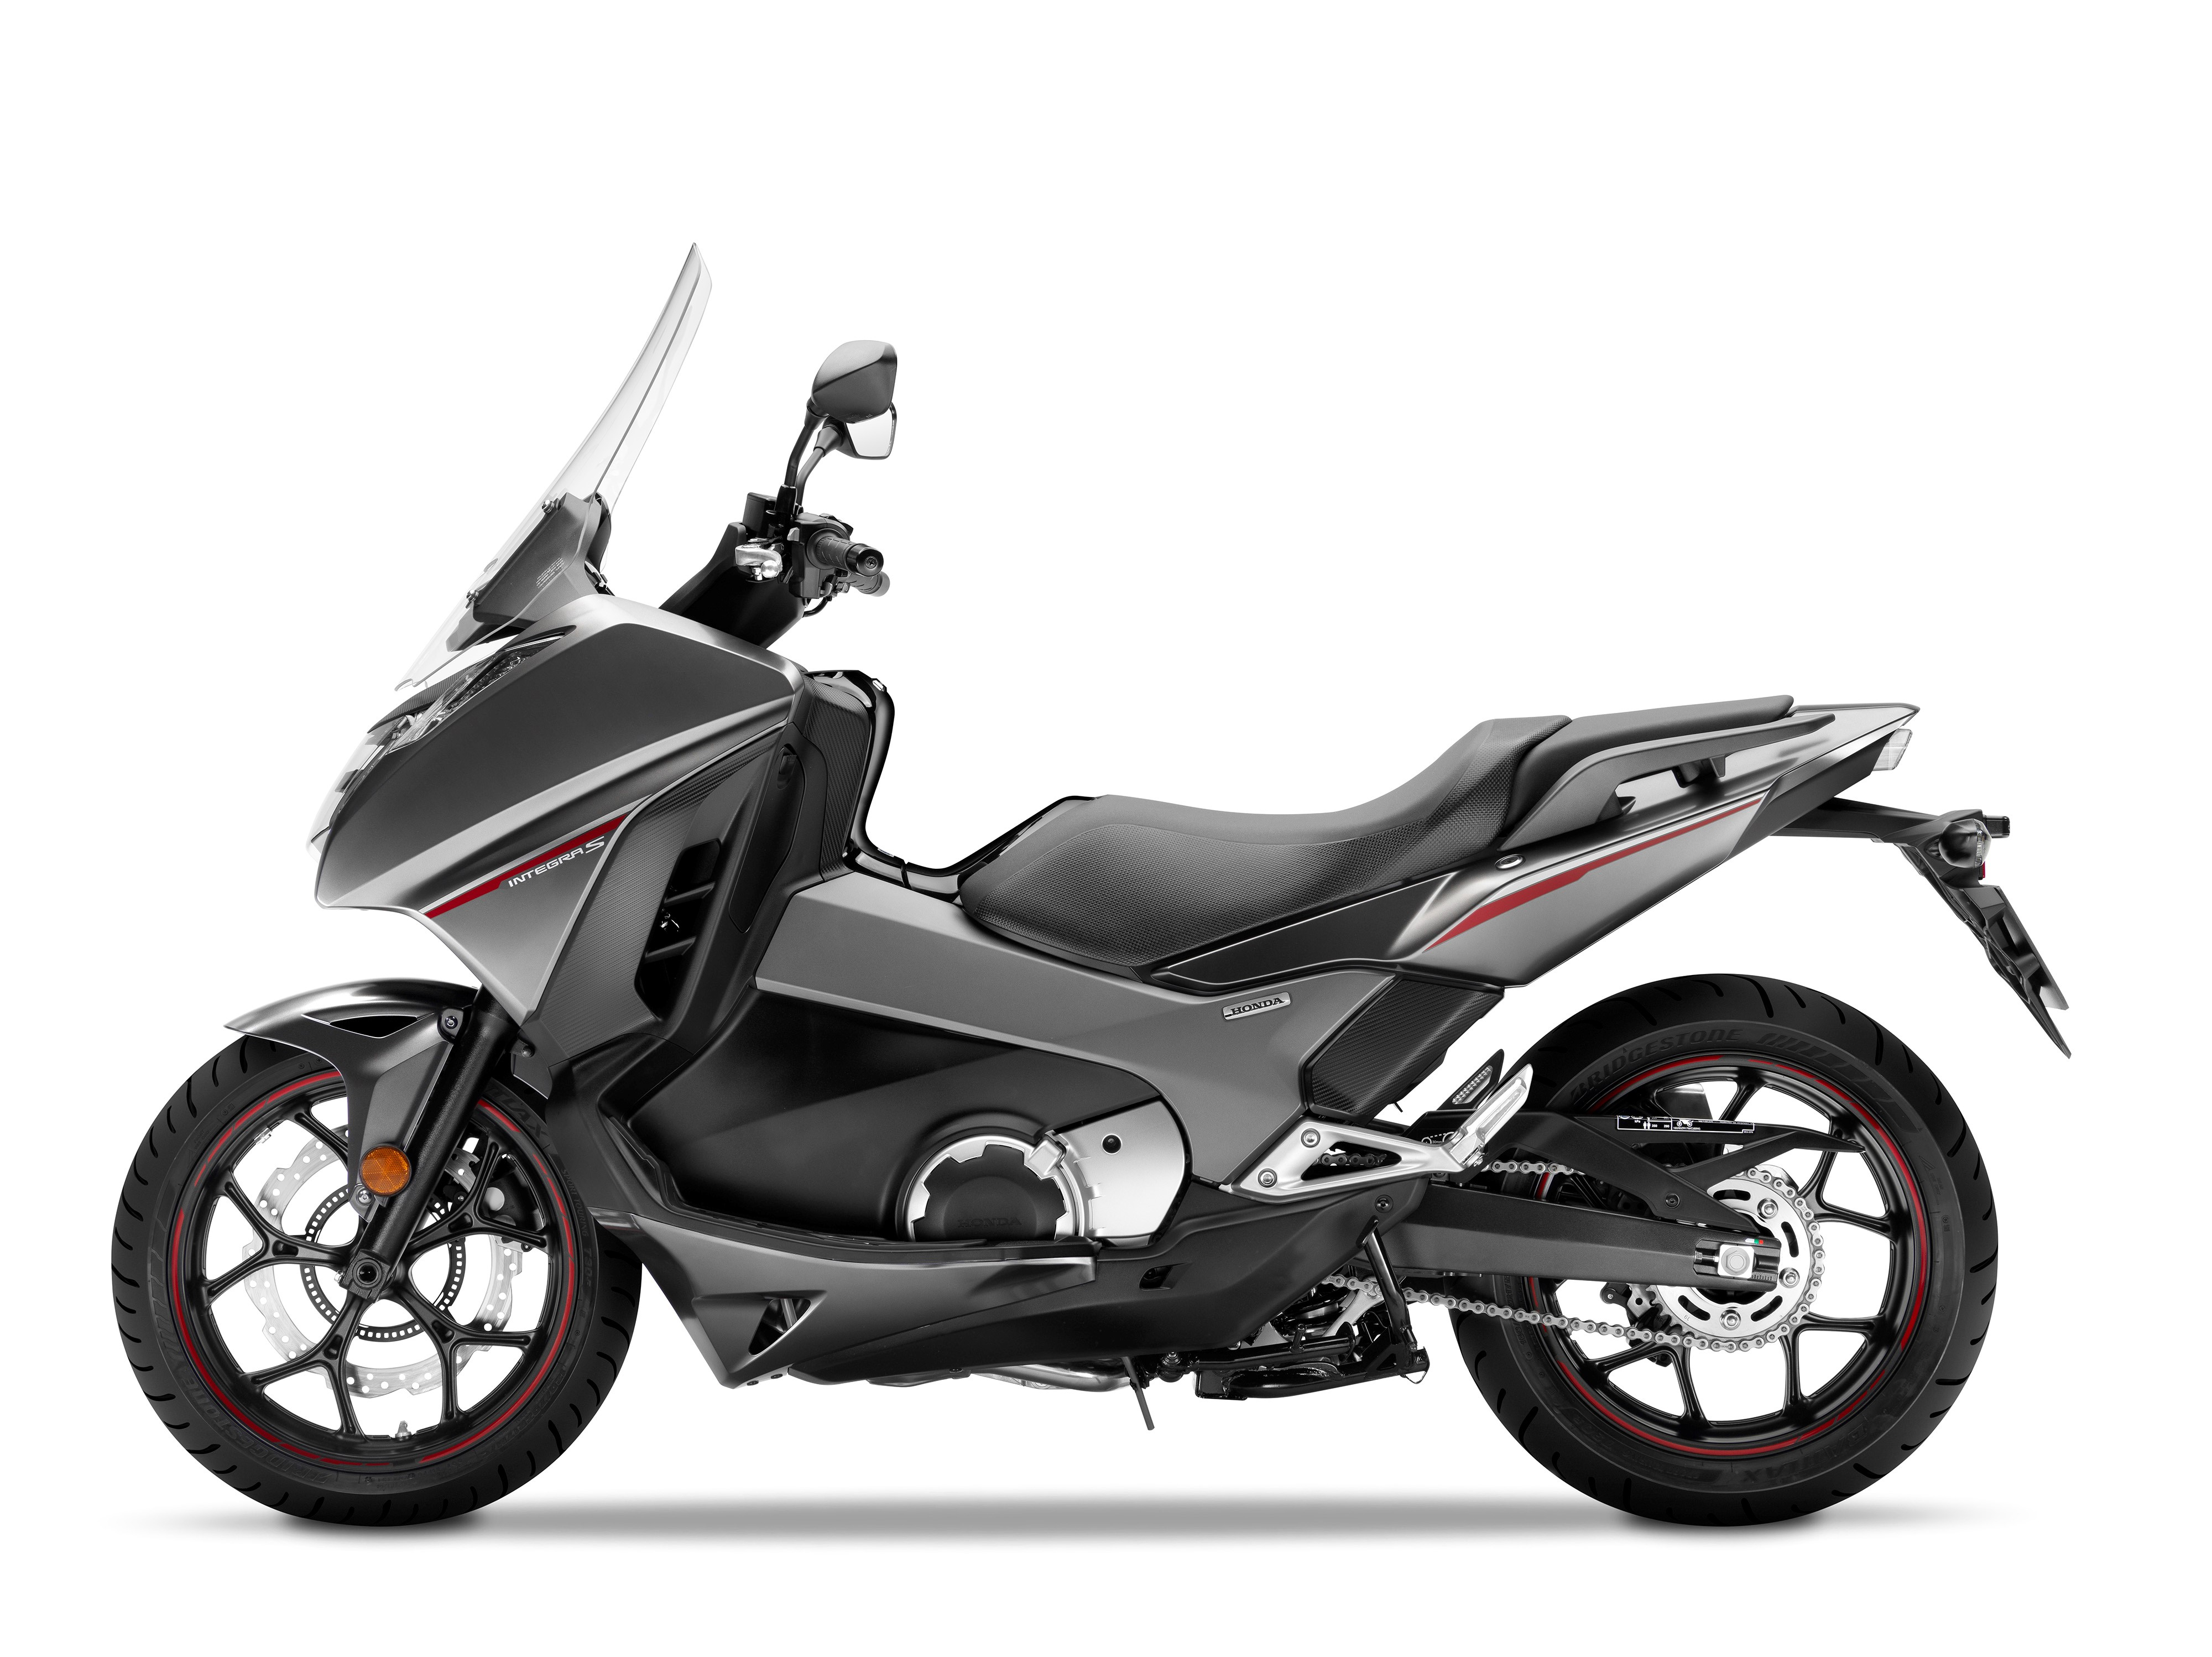 honda to produce x adv dual purpose super scooter image 450137. Black Bedroom Furniture Sets. Home Design Ideas